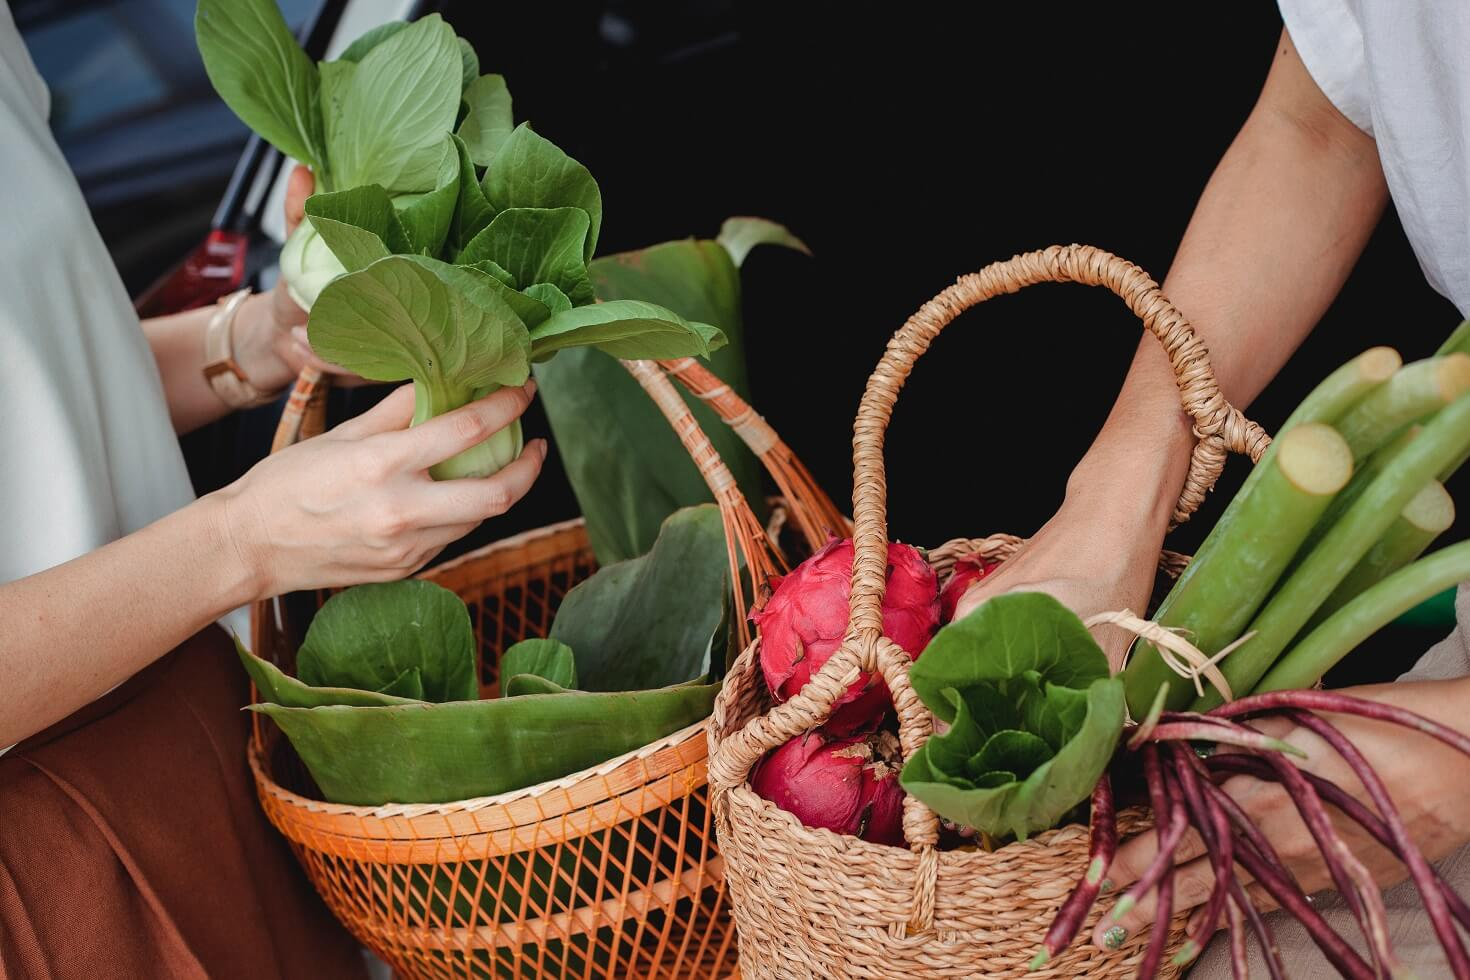 Two people holding bags of heart-healthy produce including celery, bok choy, and radishes